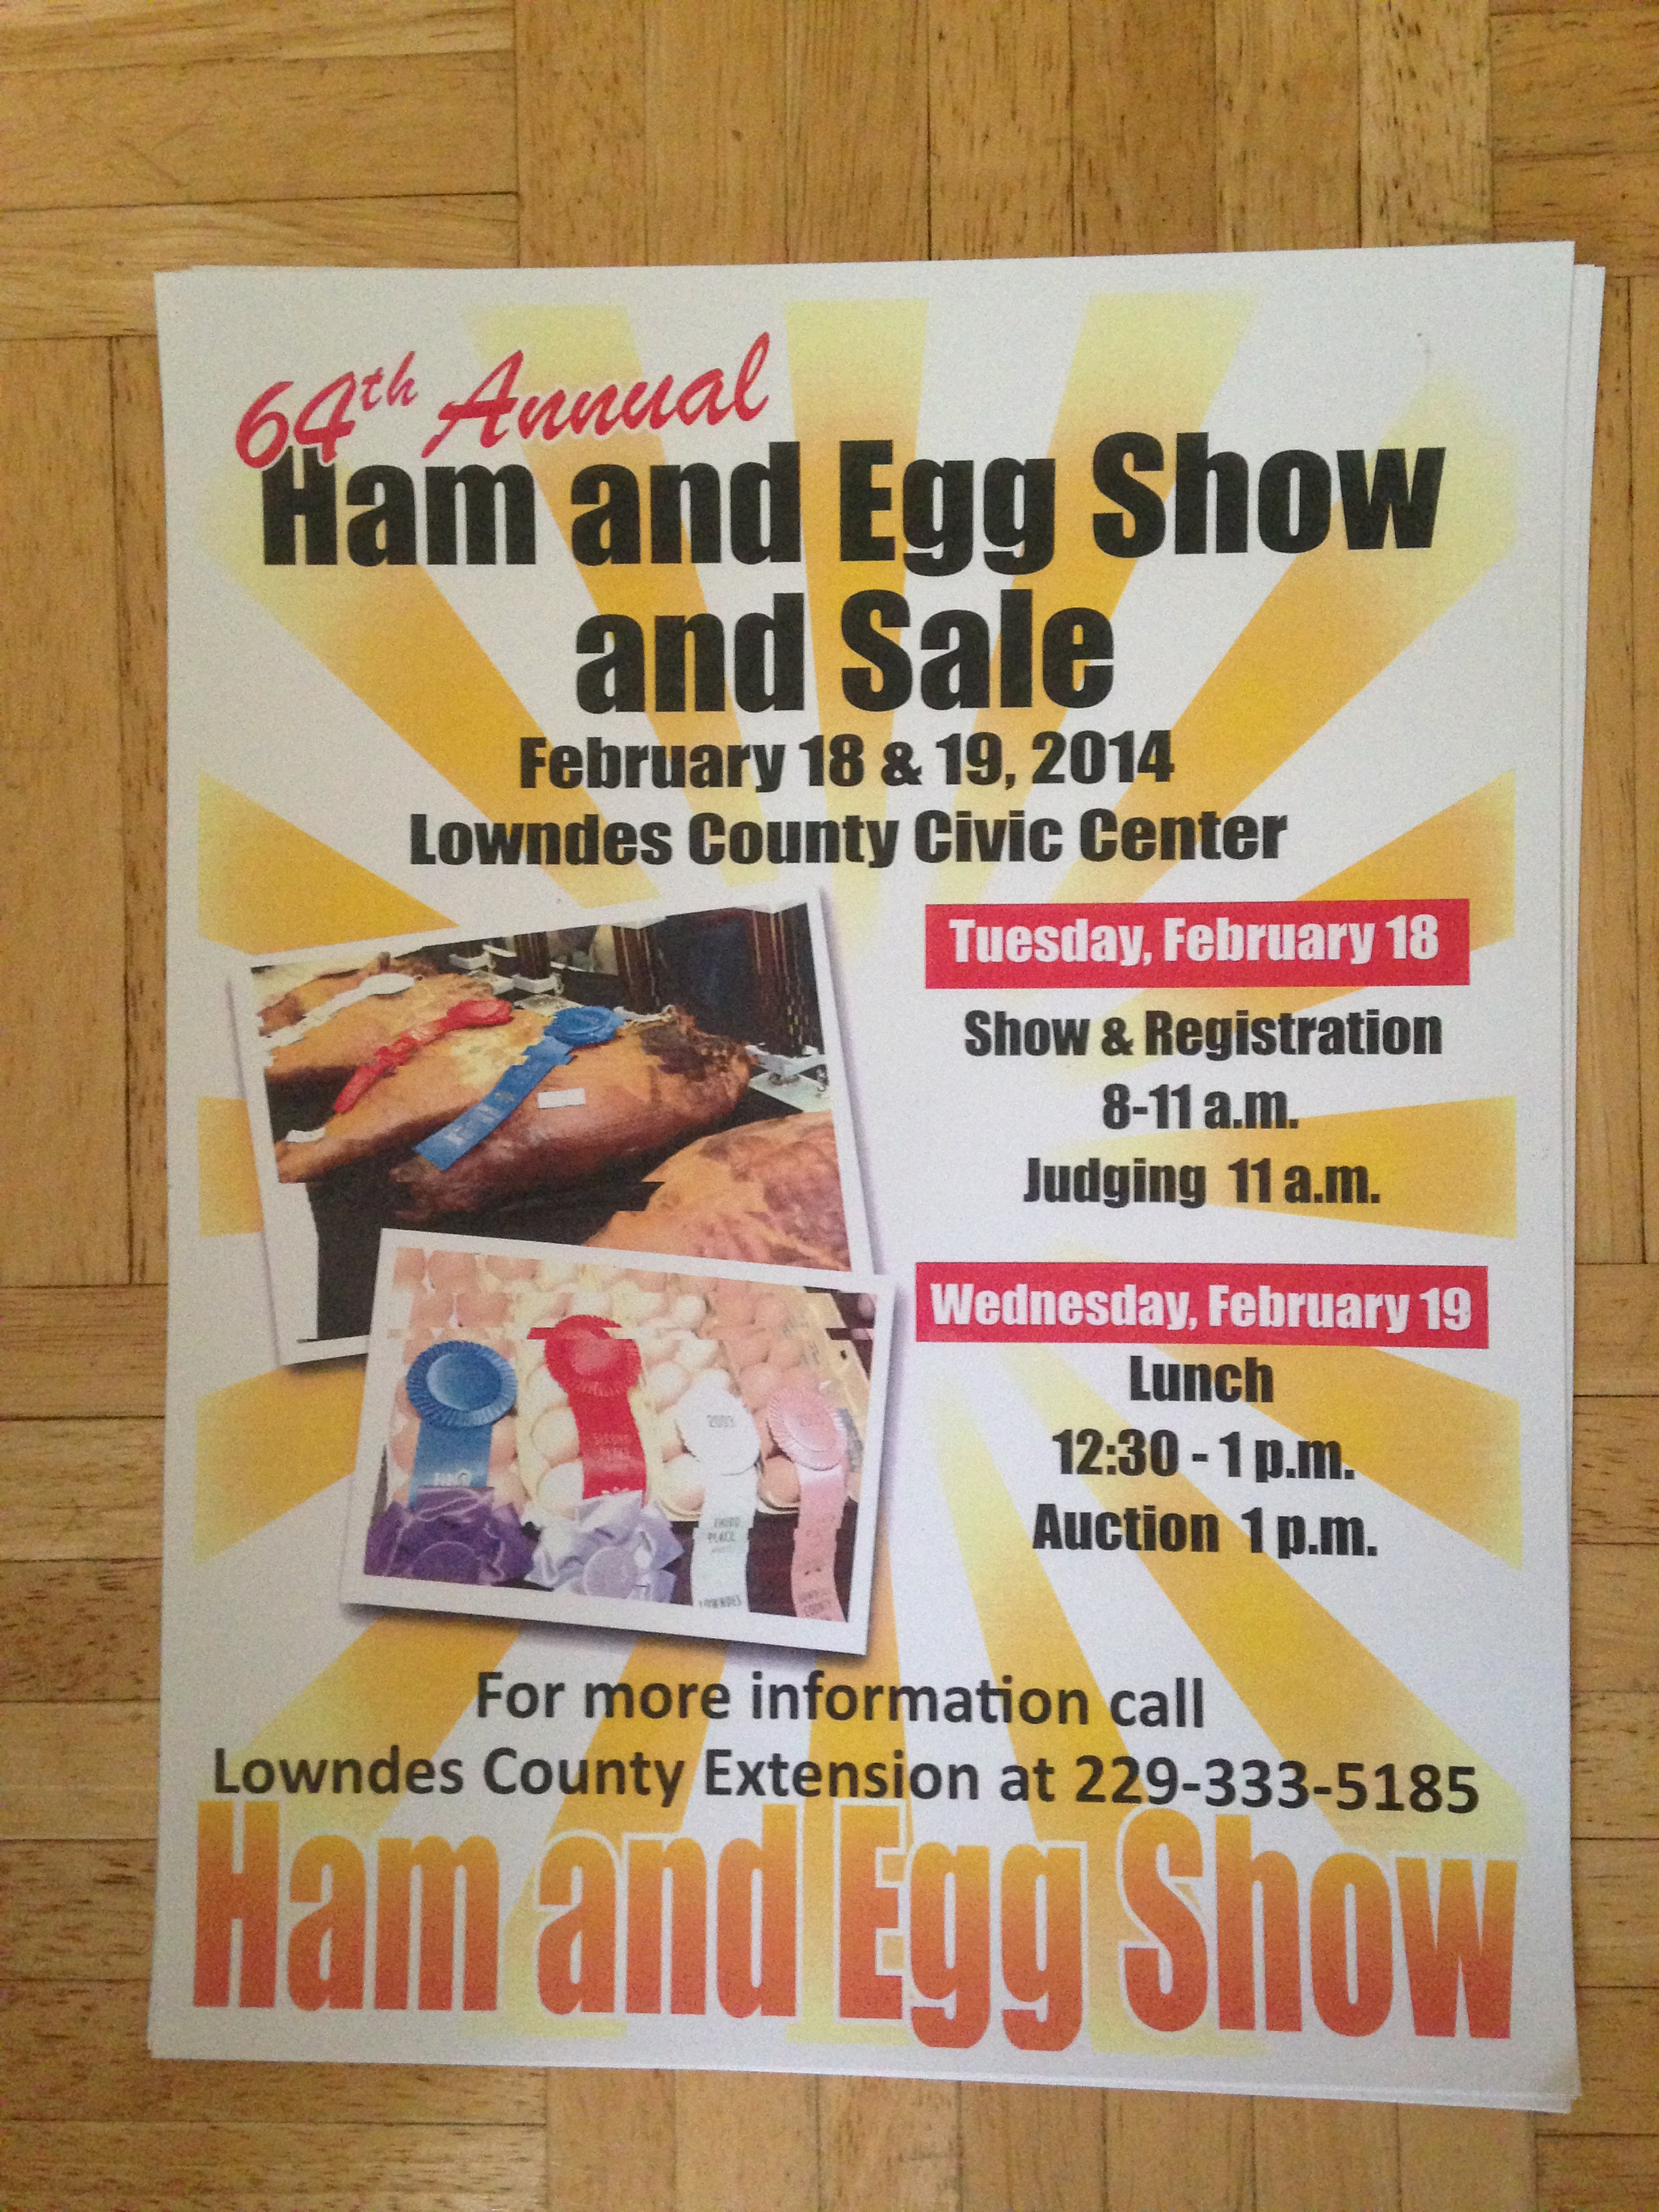 Ham and Eggs 2014, in 64th Annual Ham and Eggs Show, by Gretchen Quarterman, for Okra Paradise Farms, 18 February 2014